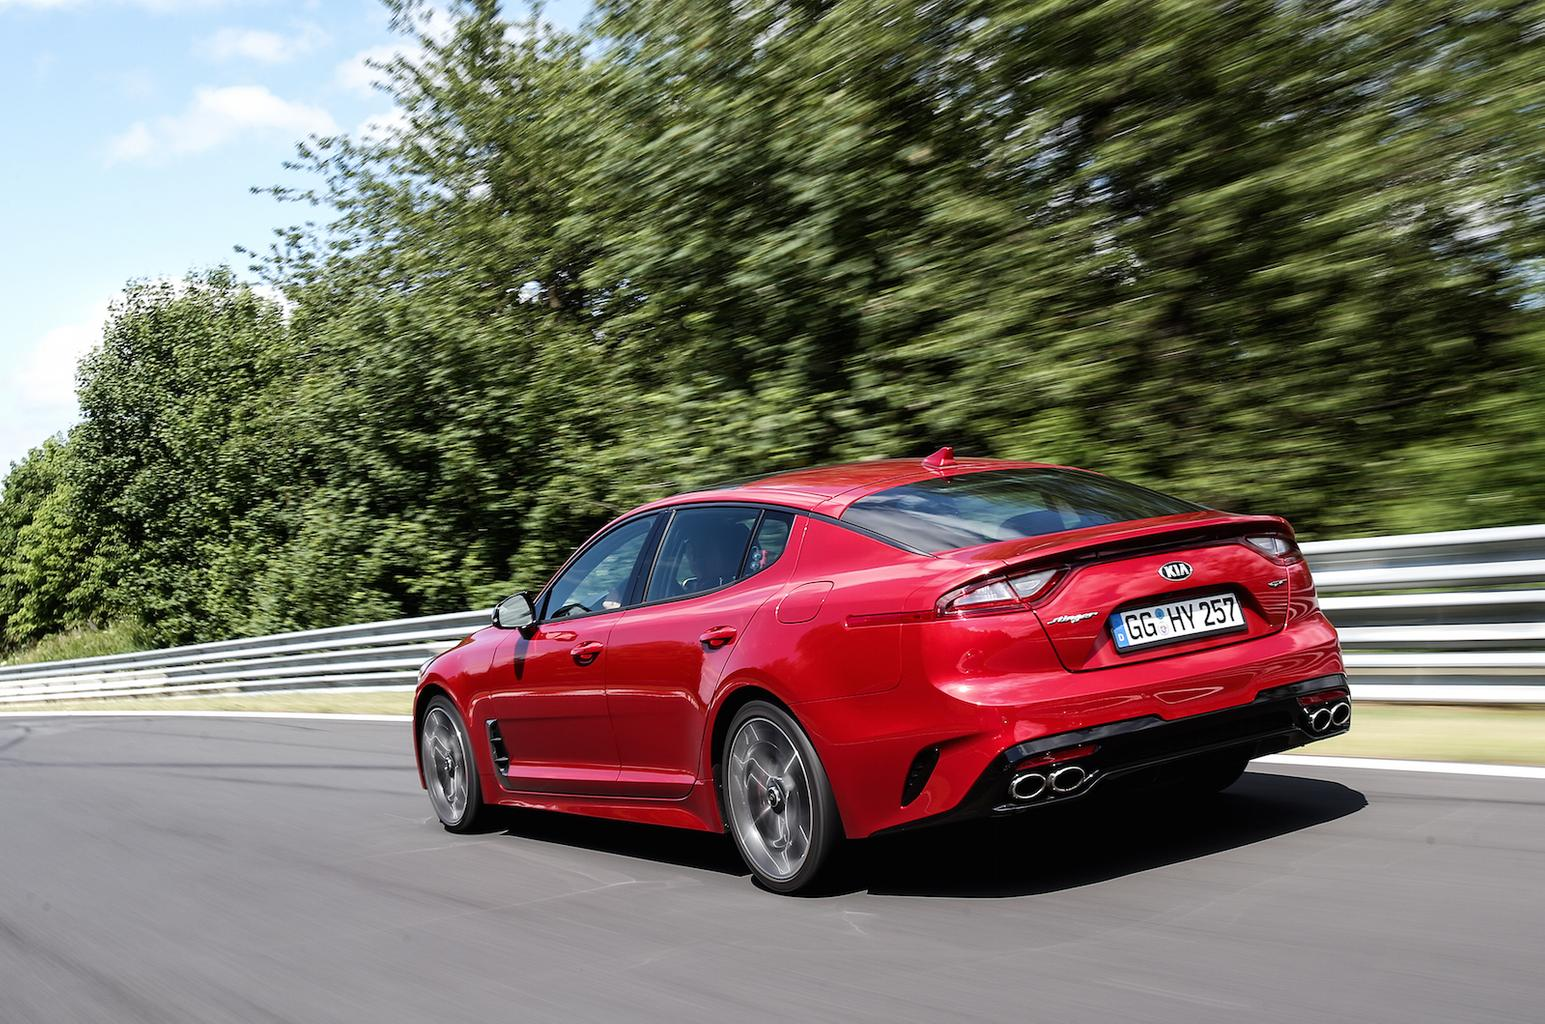 2017 Kia Stinger GT review - price, specs and release date